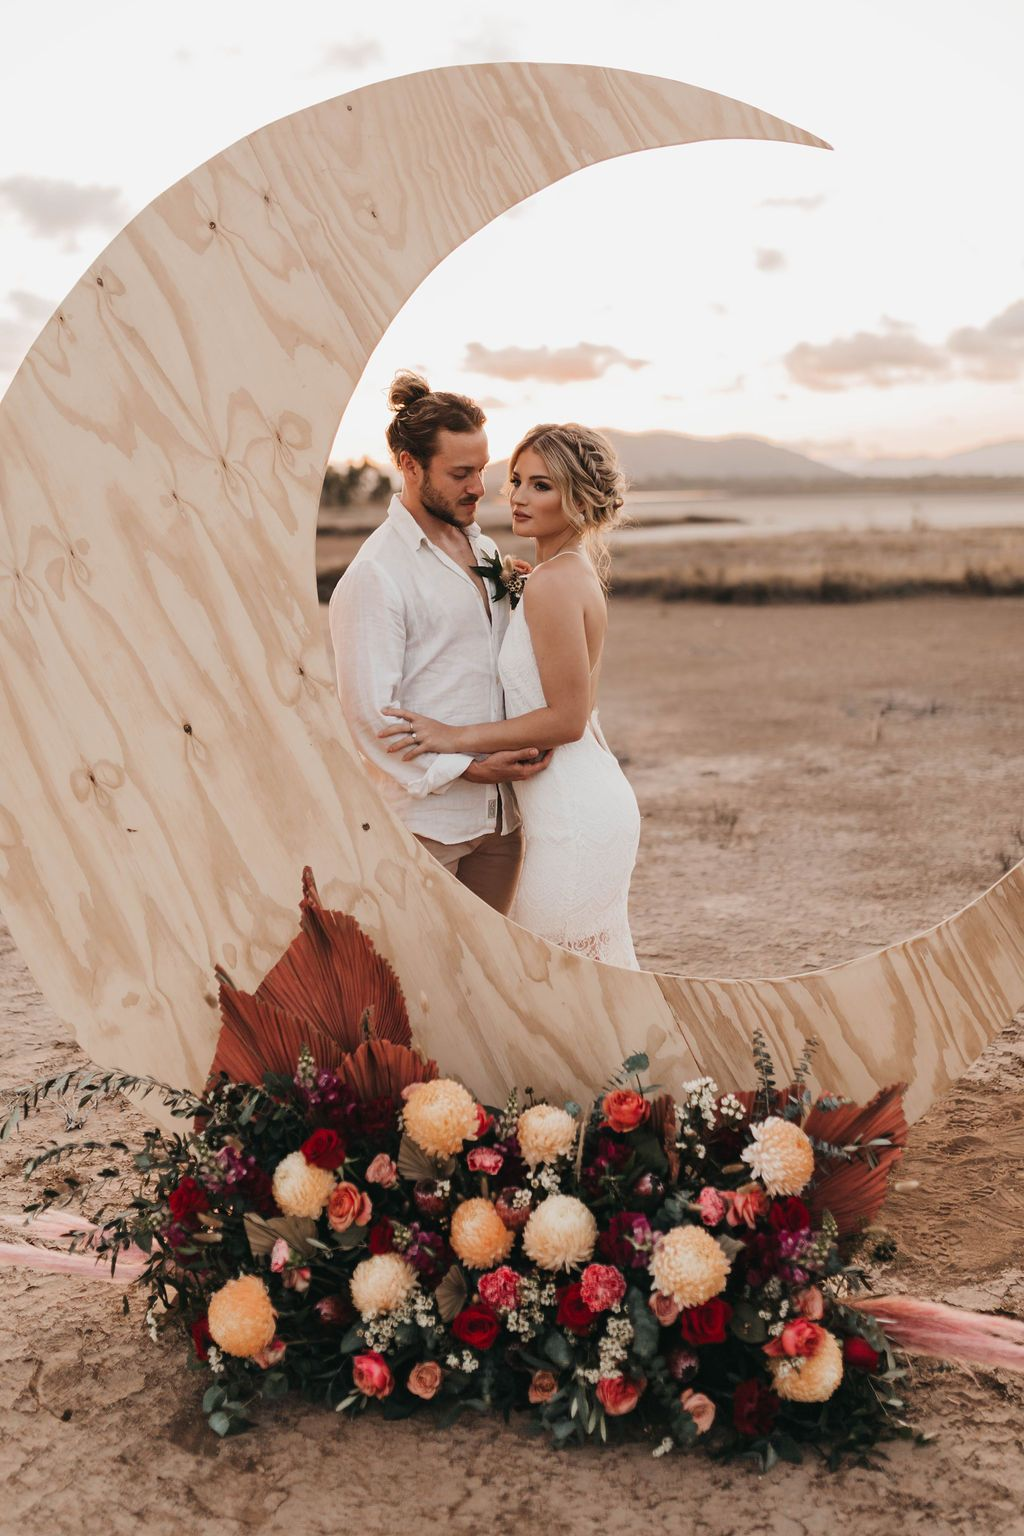 Pin By To The Aisle Australia On Styled Shoots To The Aisle In 2020 Styled Shoot Wedding Styles Photography And Videography